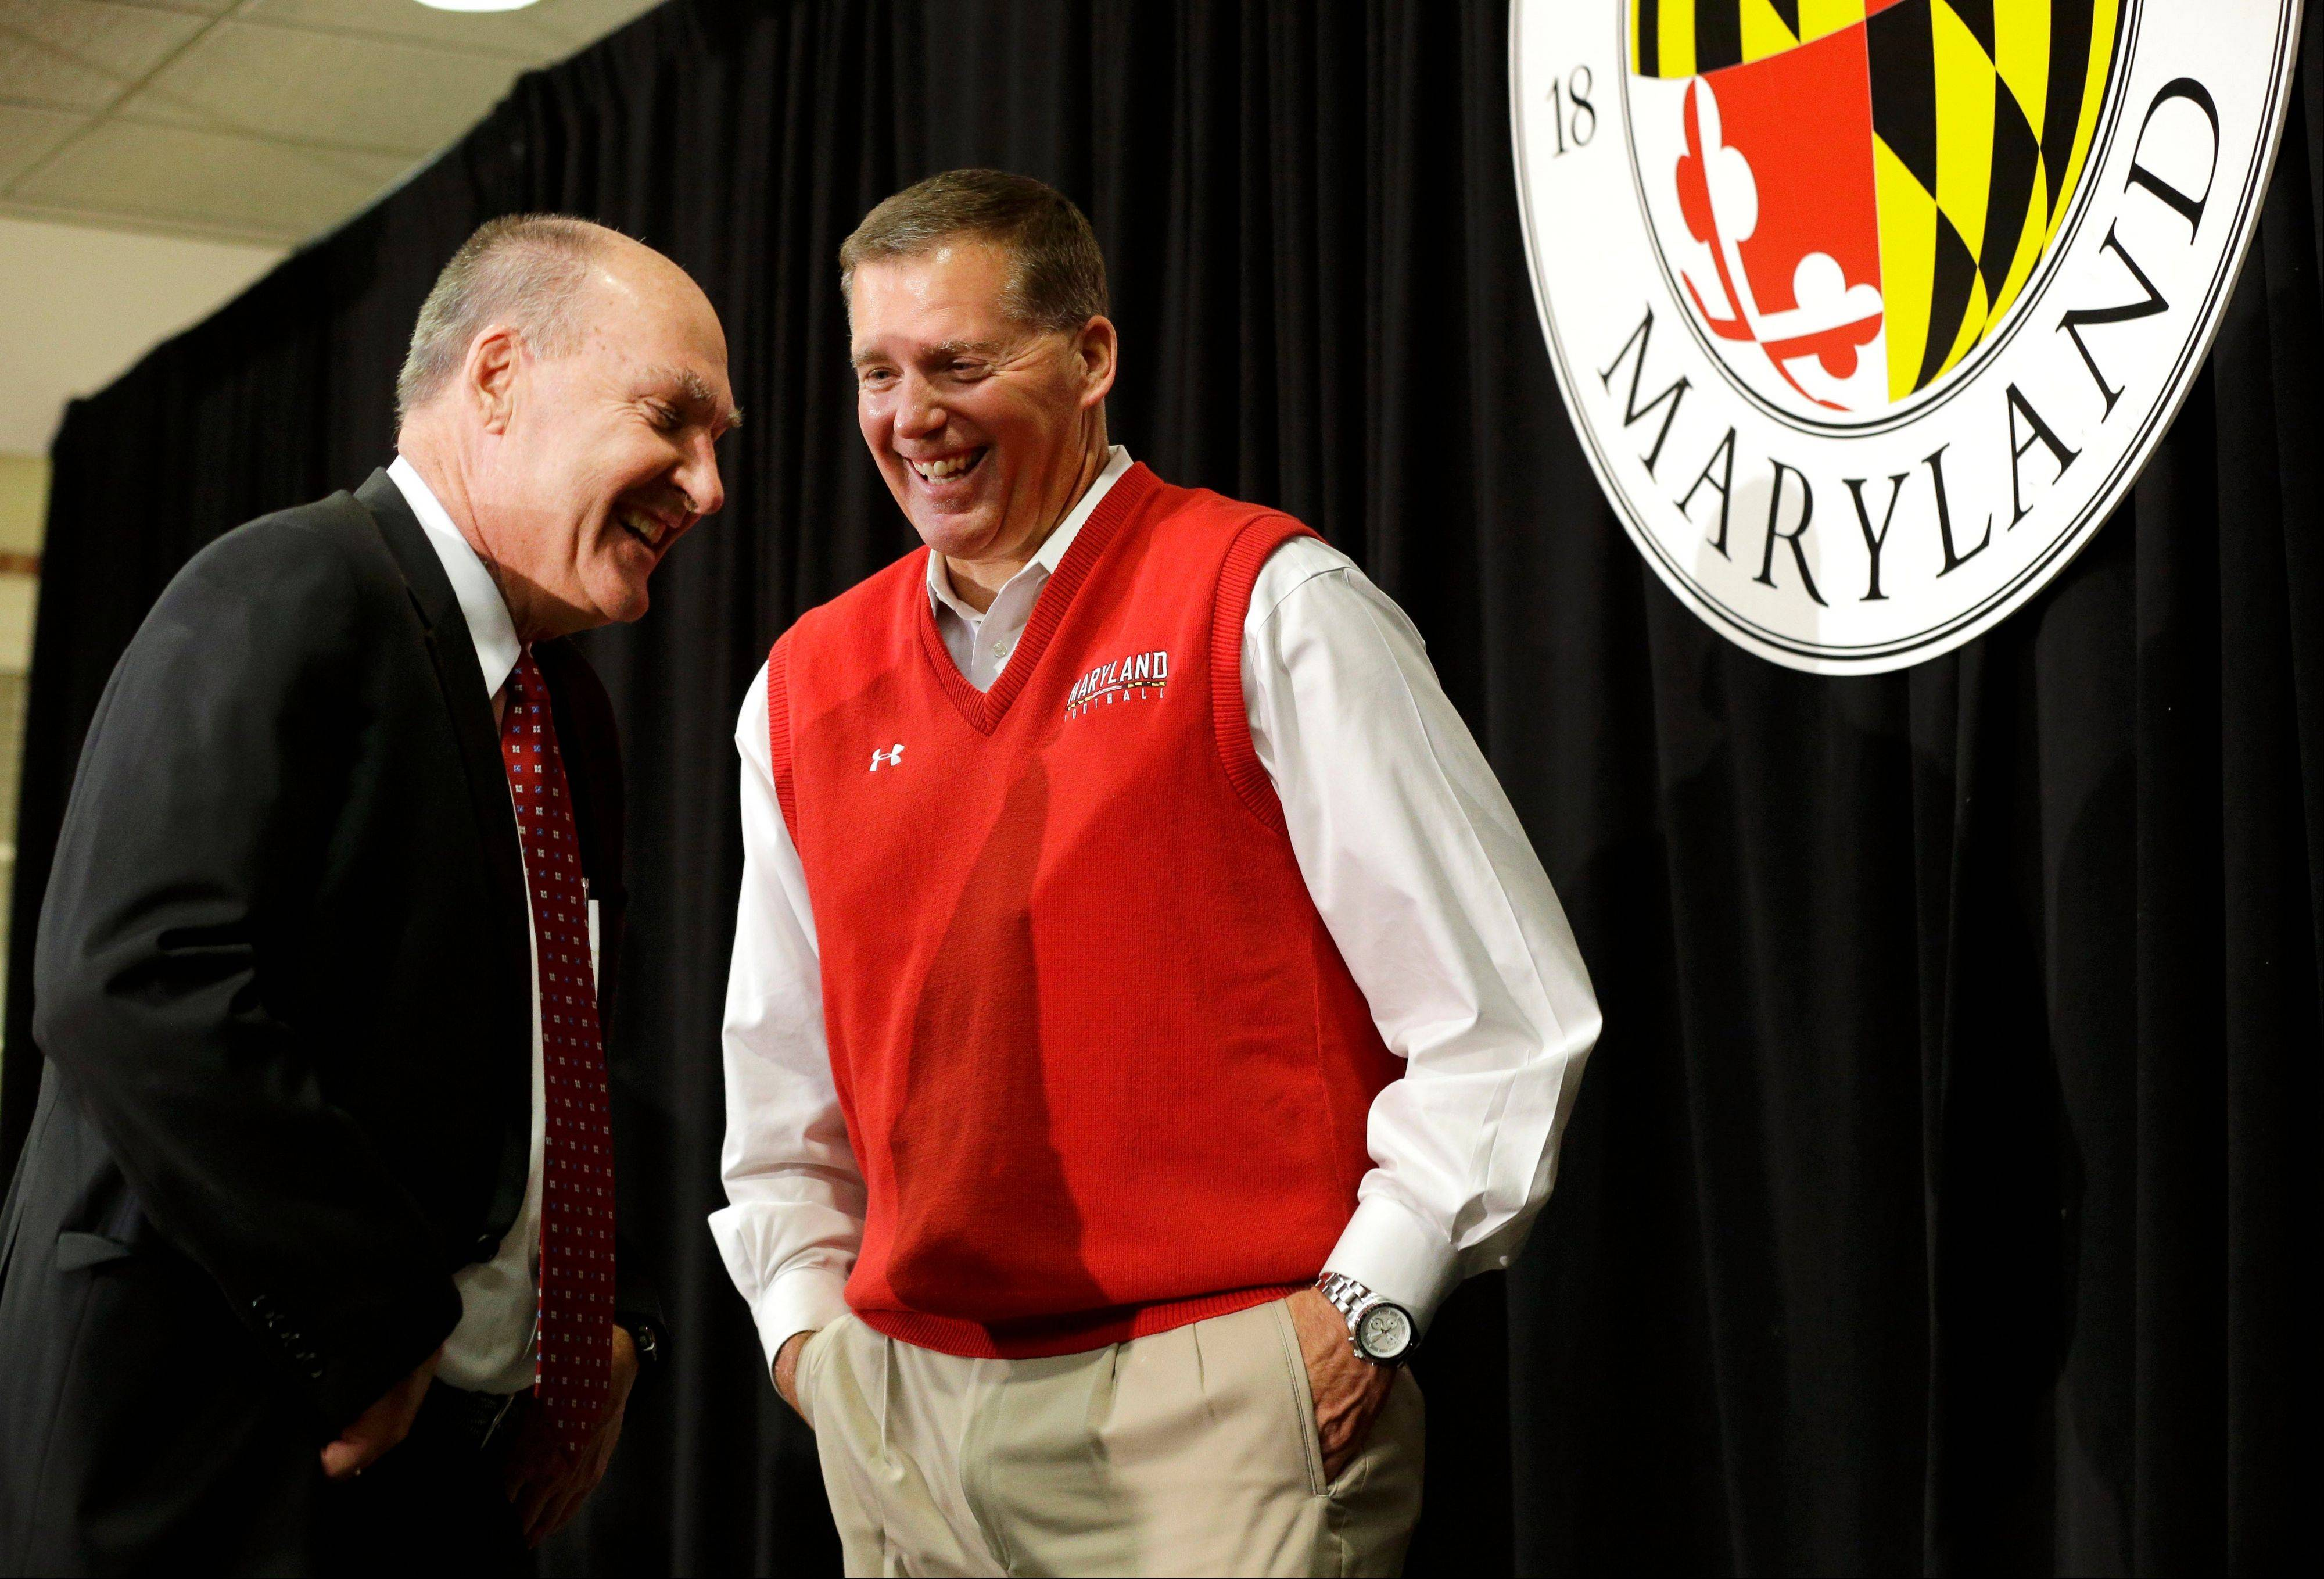 Big Ten Commissioner Jim Delany, left, speaks Monday with Maryland football coach Randy Edsall after a news conference that was held to announce Maryland�s decision to move to the Big Ten. Edsall, 6-17 in his two seasons at the school, is certain Maryland will flourish in its new conference.